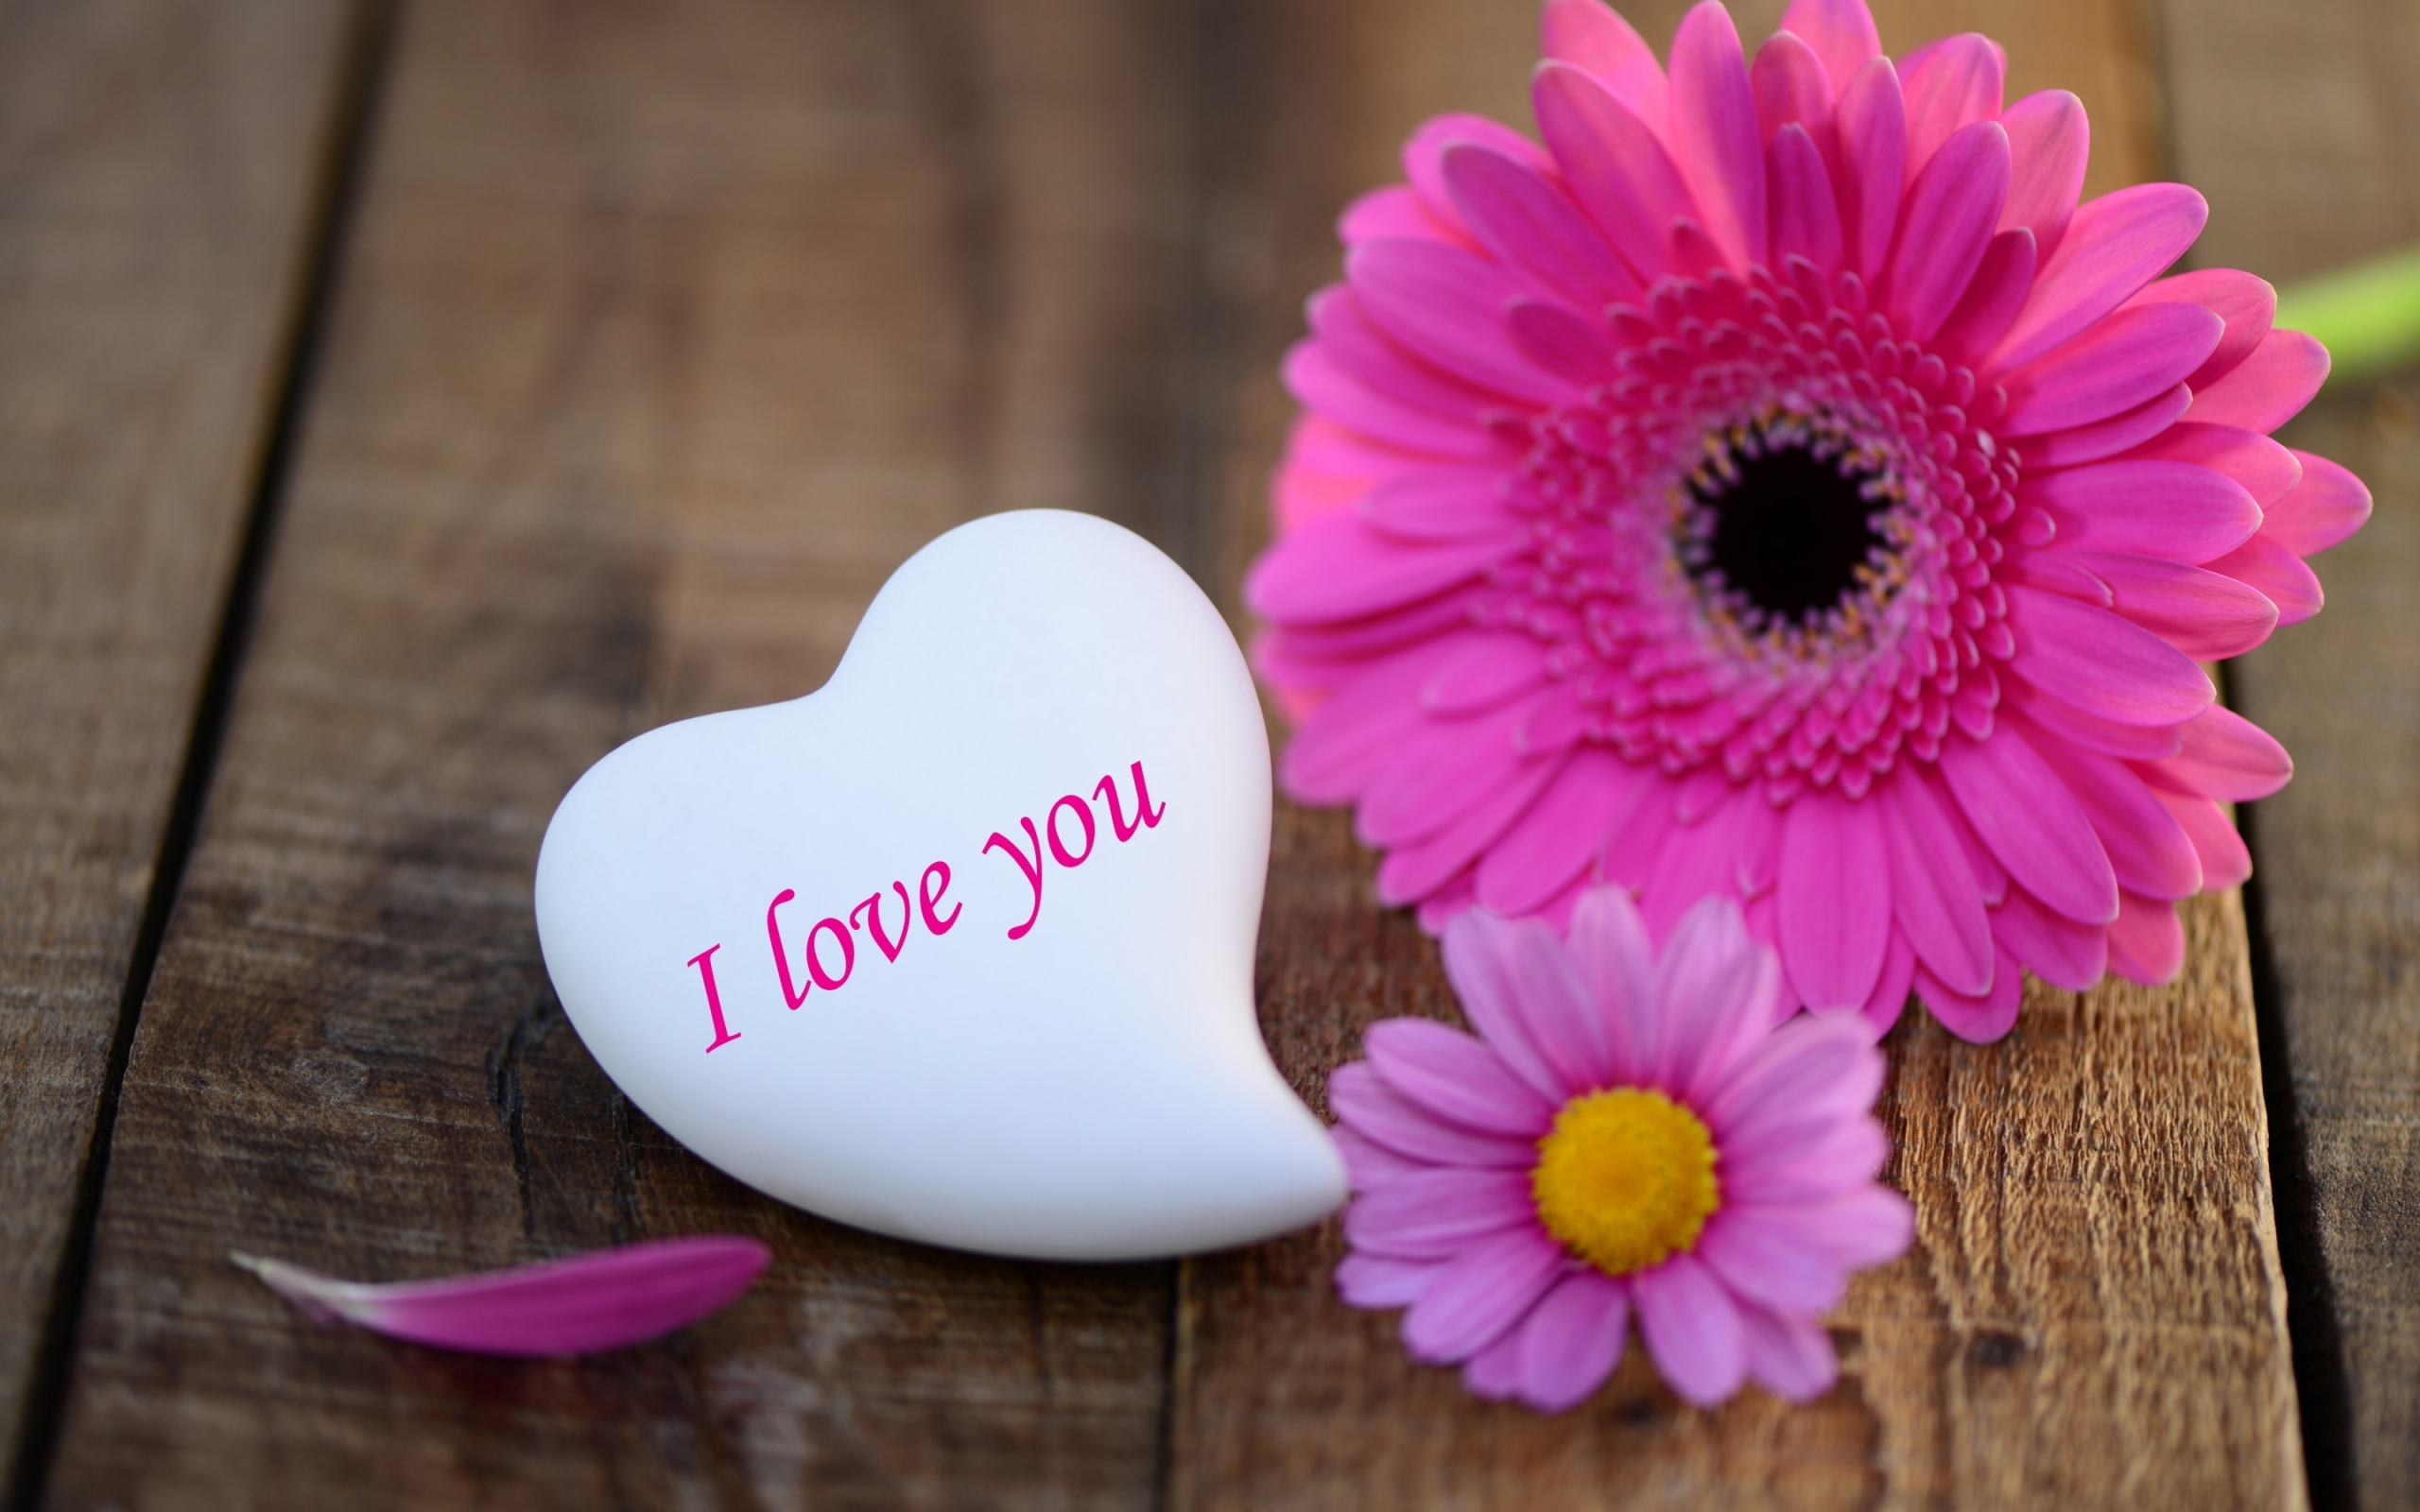 Heart Stone I Love You Wide Wallpaper Pink Daisies Heart Stone I Love